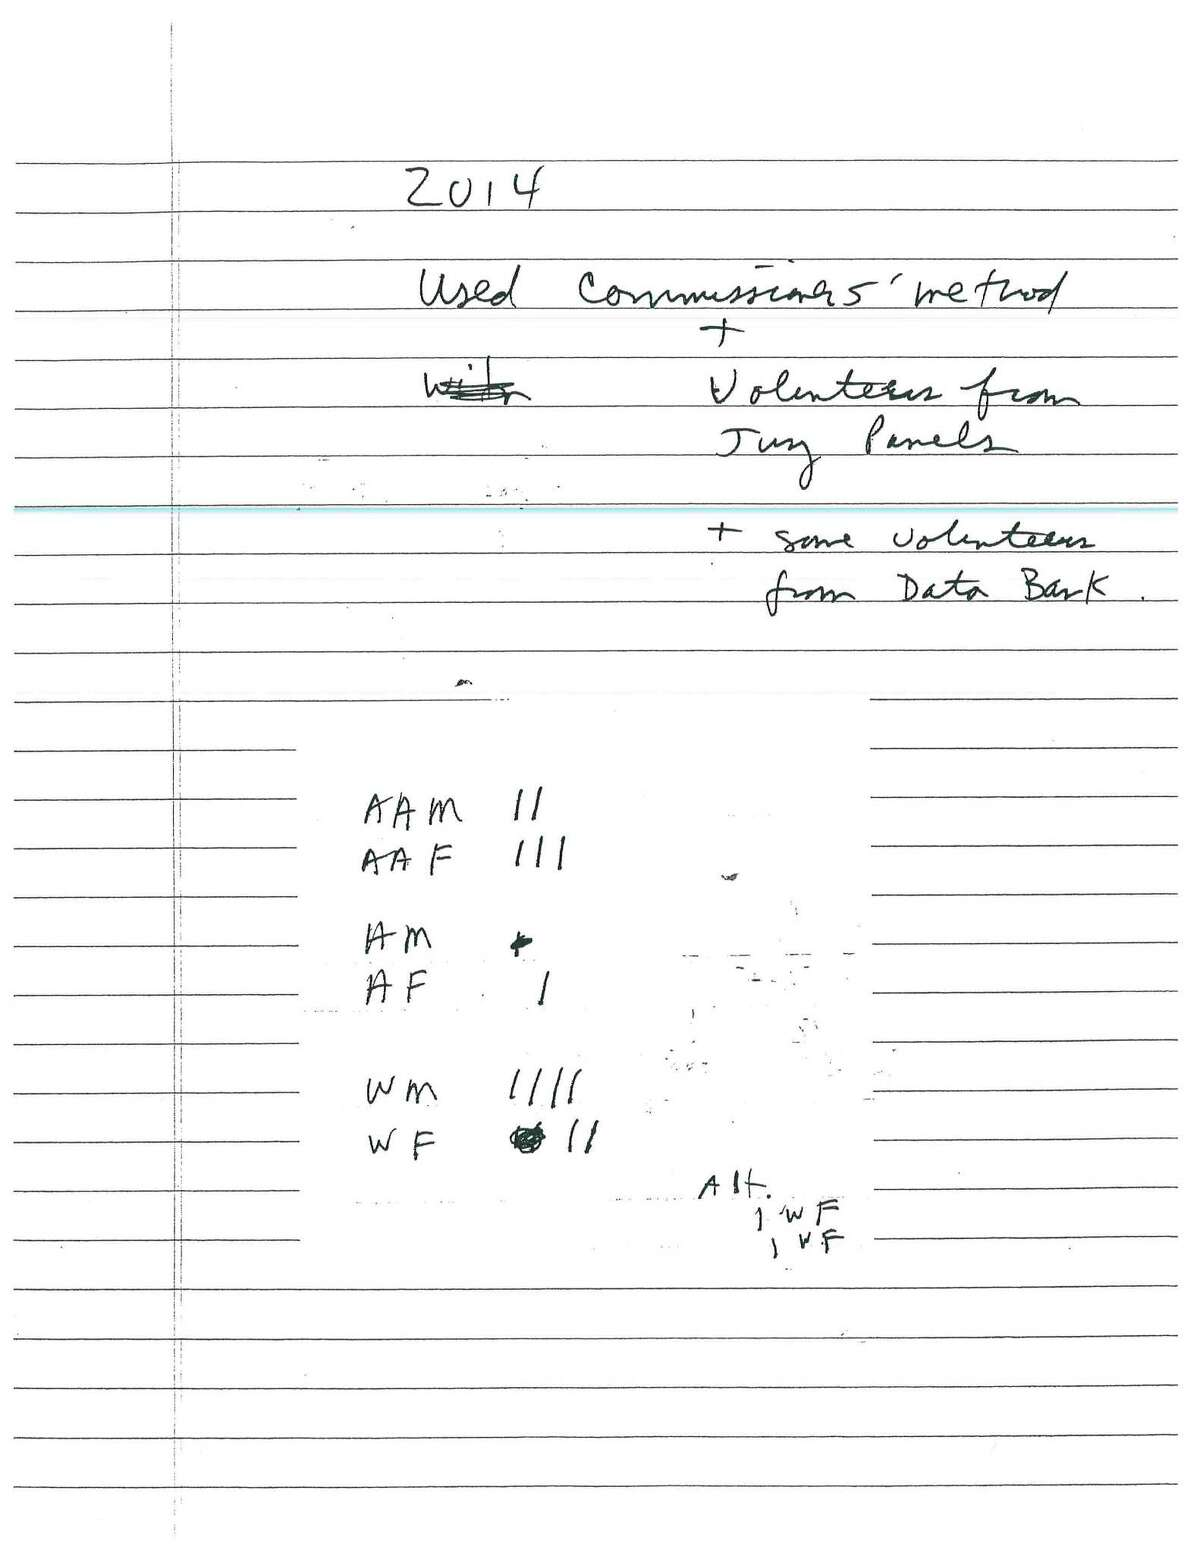 Some courts provided handwritten notes tracking the racial makeup of their juries.